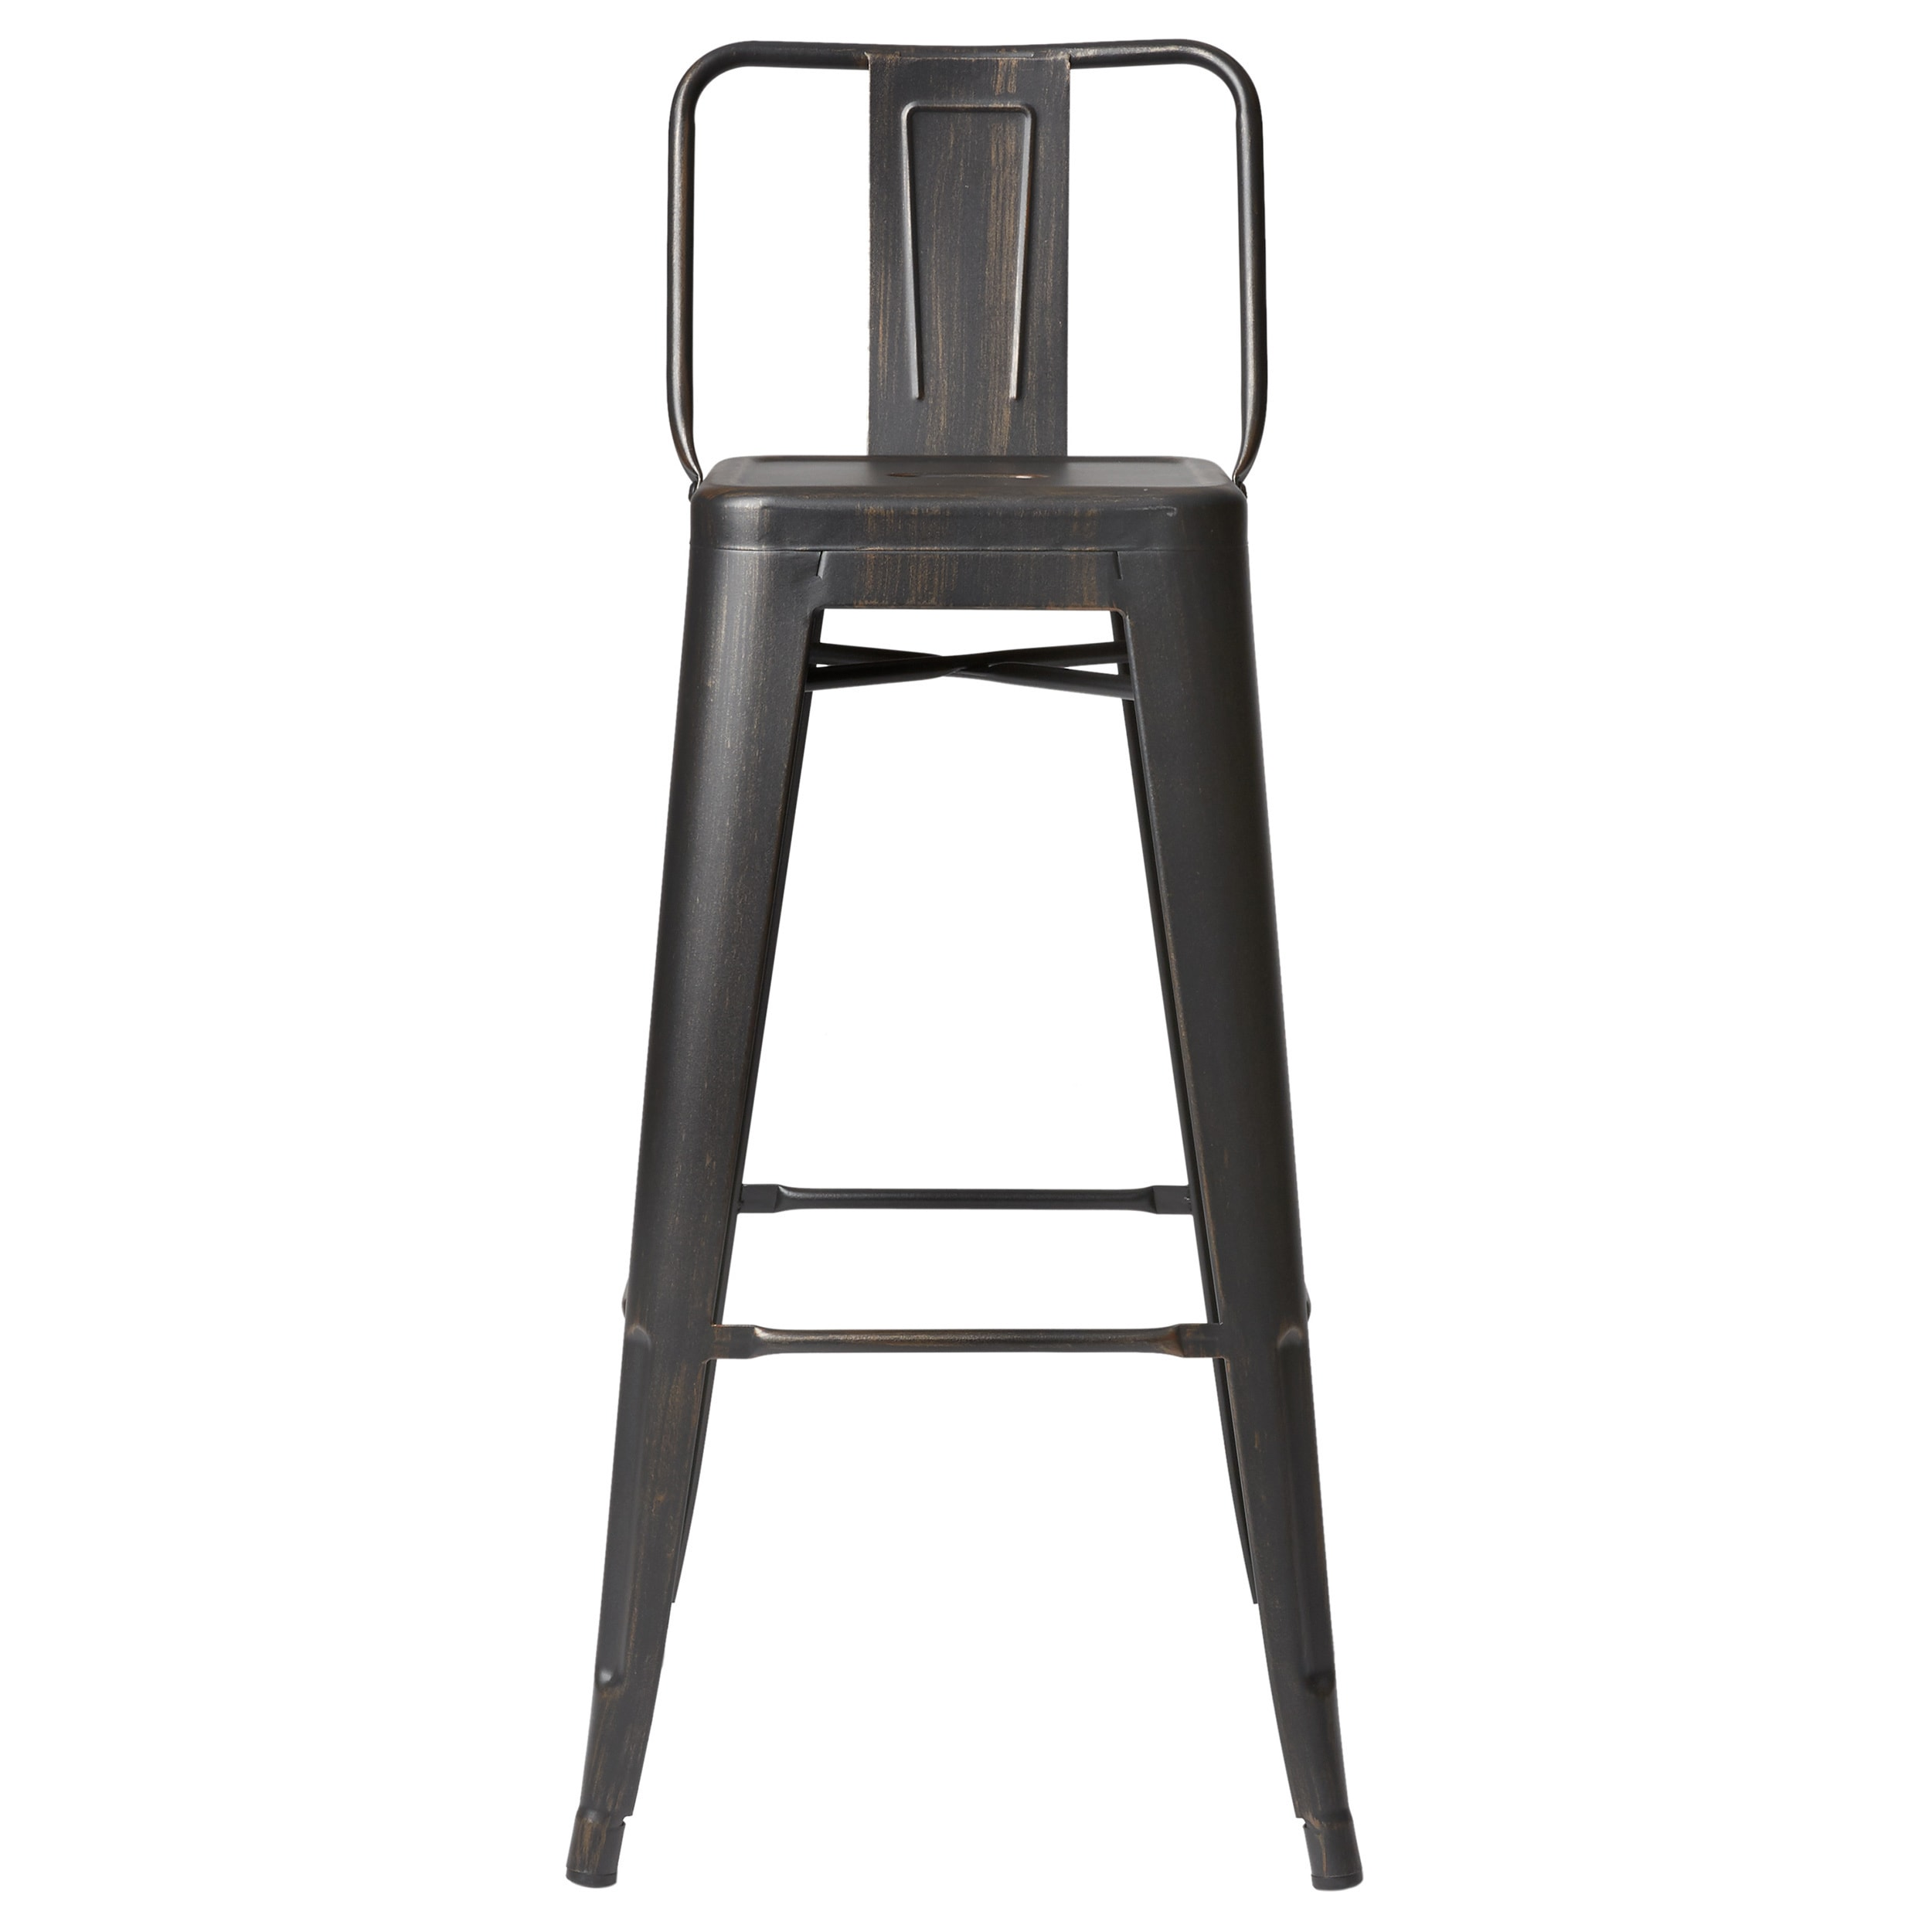 Shop Carbon Loft Ruska Steel 30 Inch Bar Stool Set Of 2 On Sale